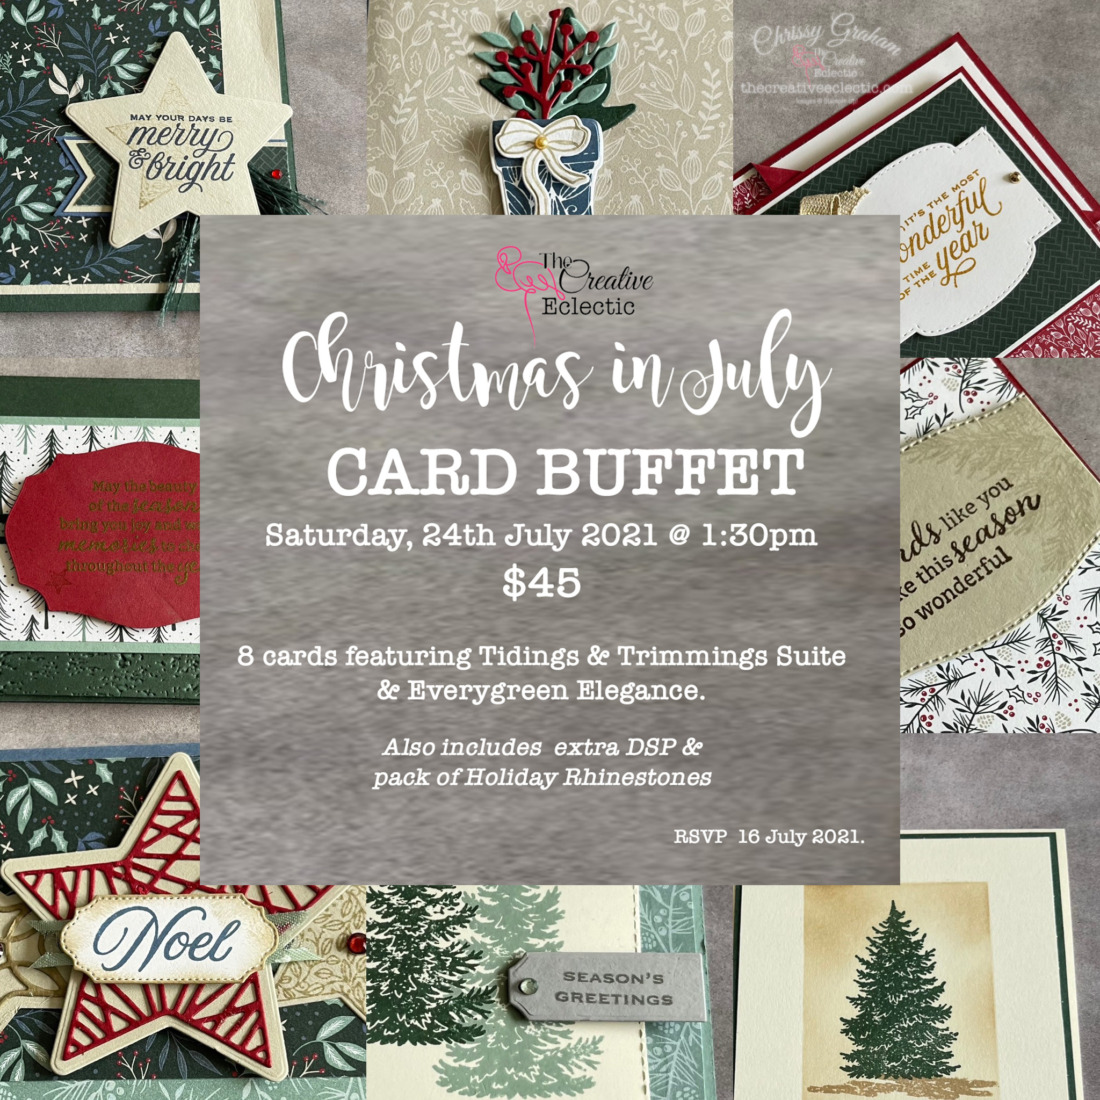 Christmas in July Card Buffet 2021 #ChristmasCardmakingClass #christmas #handmadecards #creativeclasses